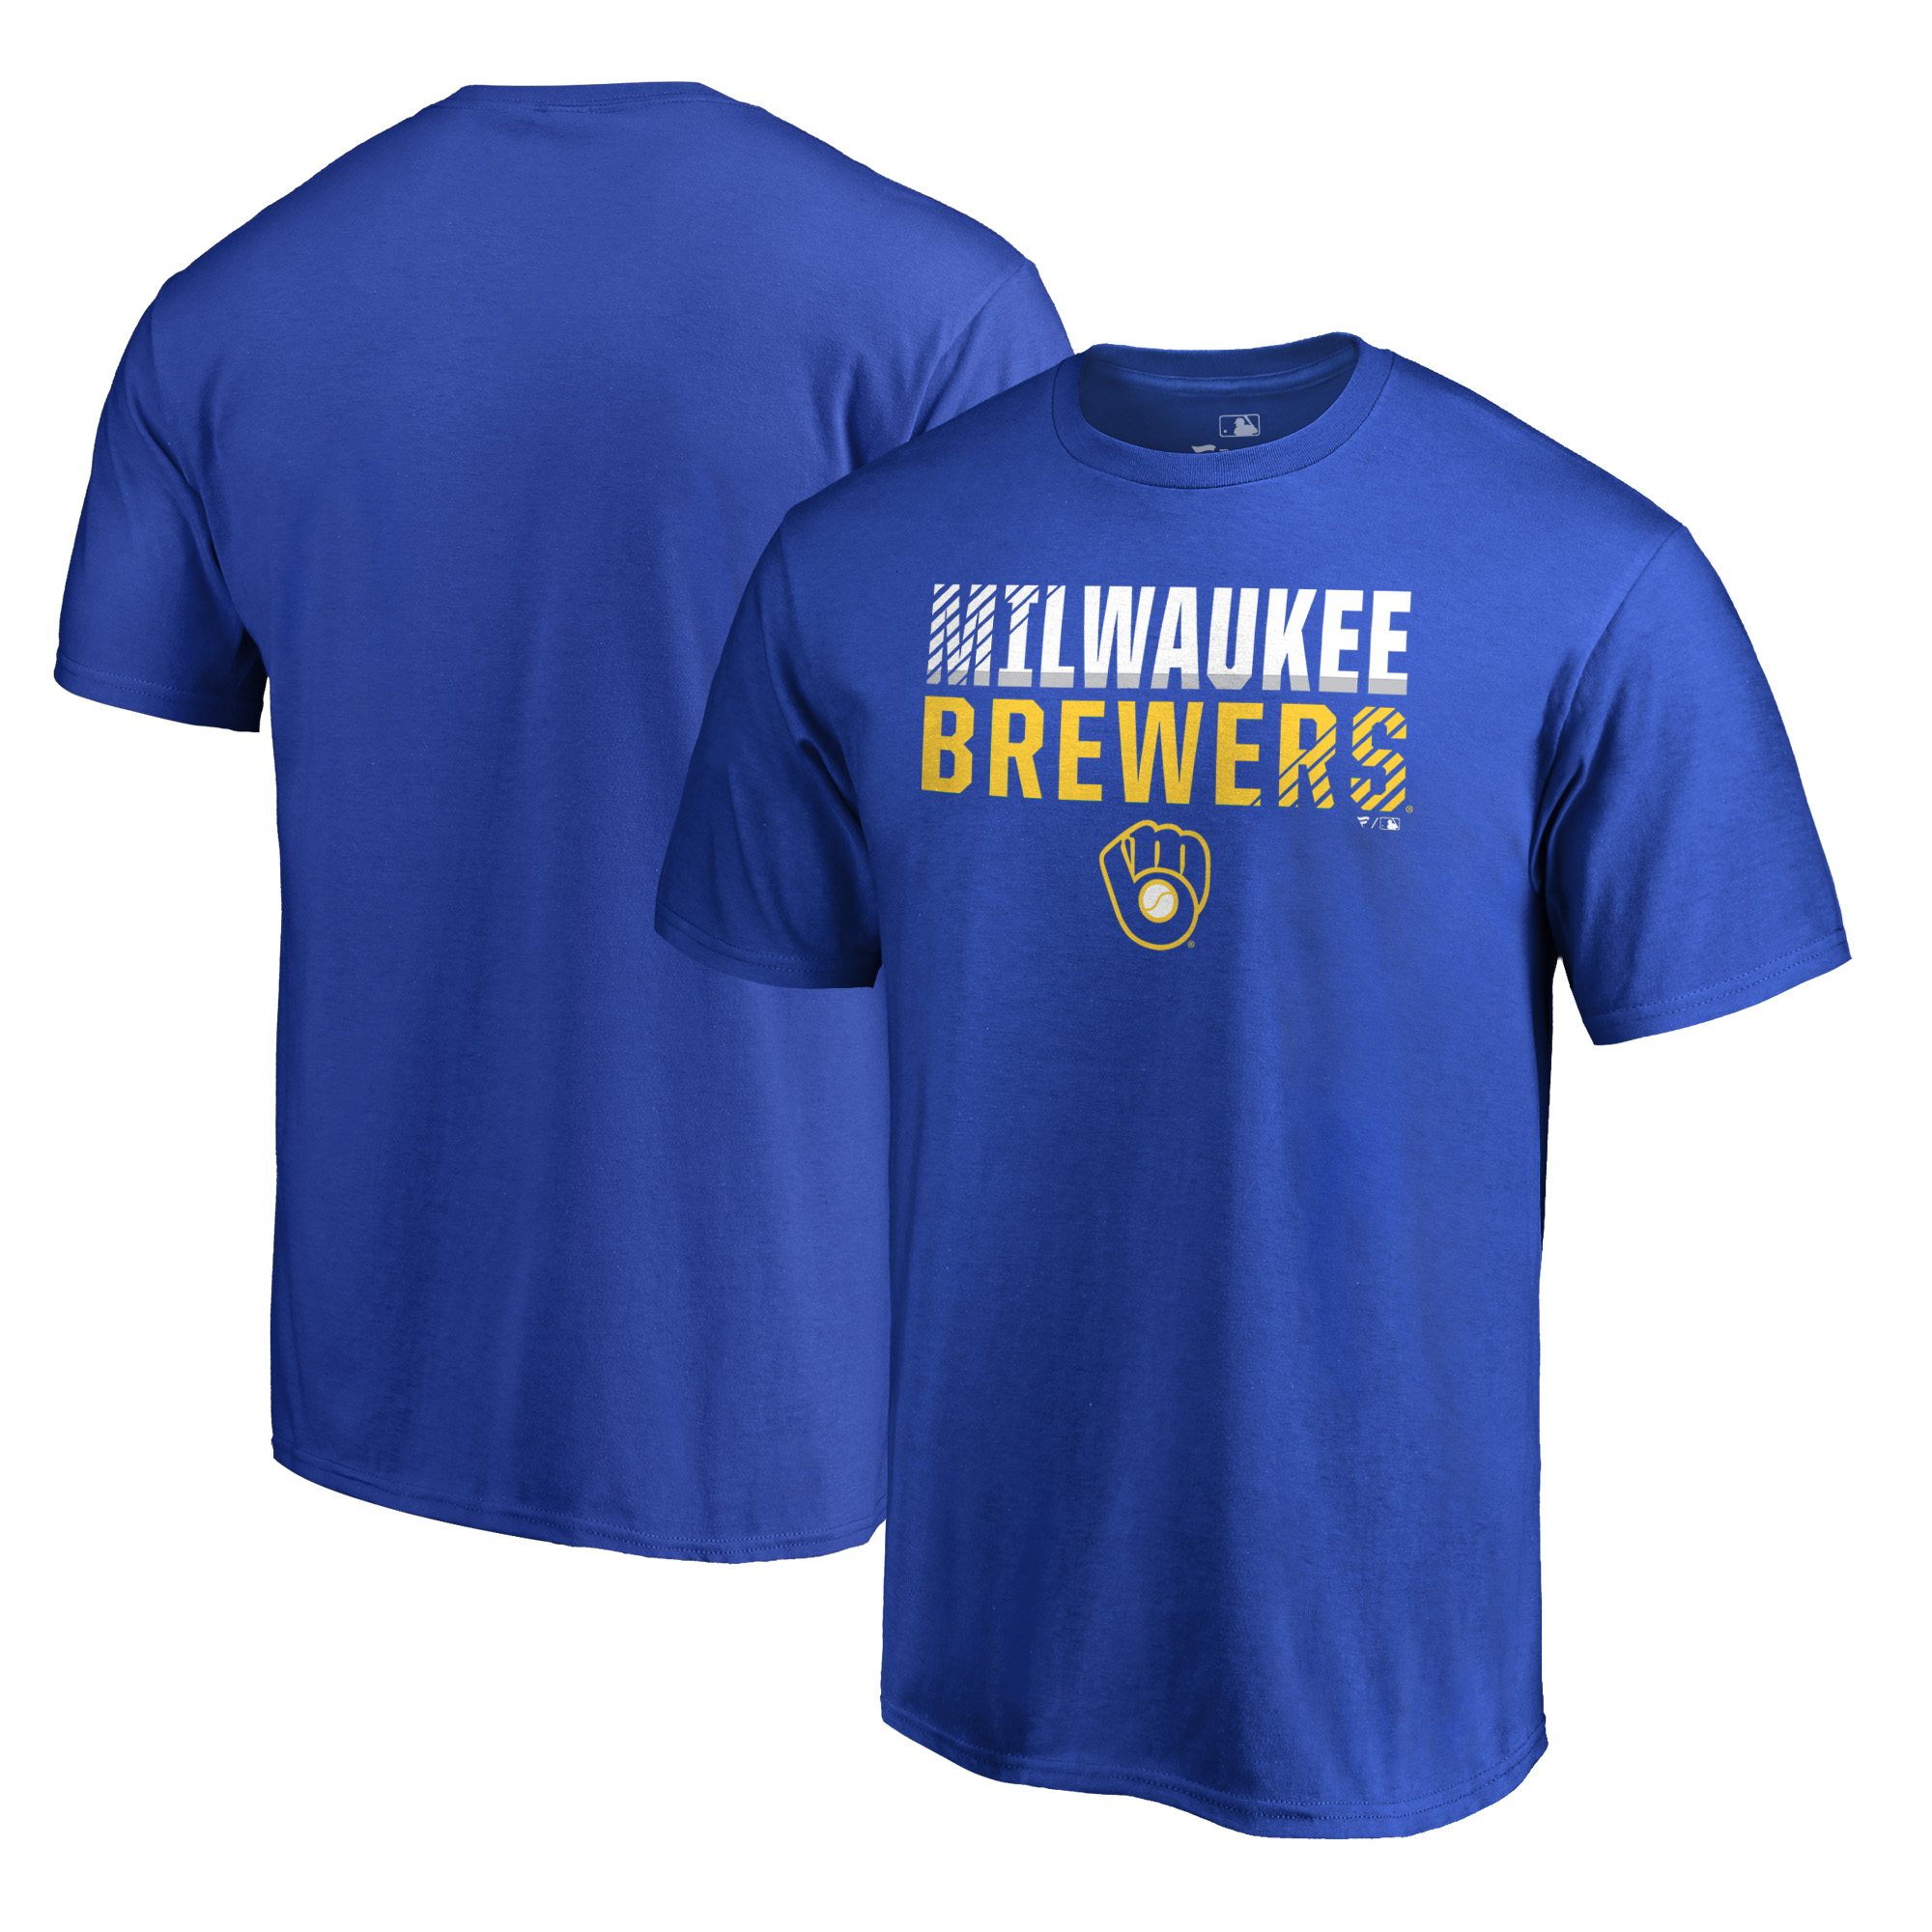 Milwaukee Brewers Fanatics Branded Team Fade Out T-Shirt - Royal